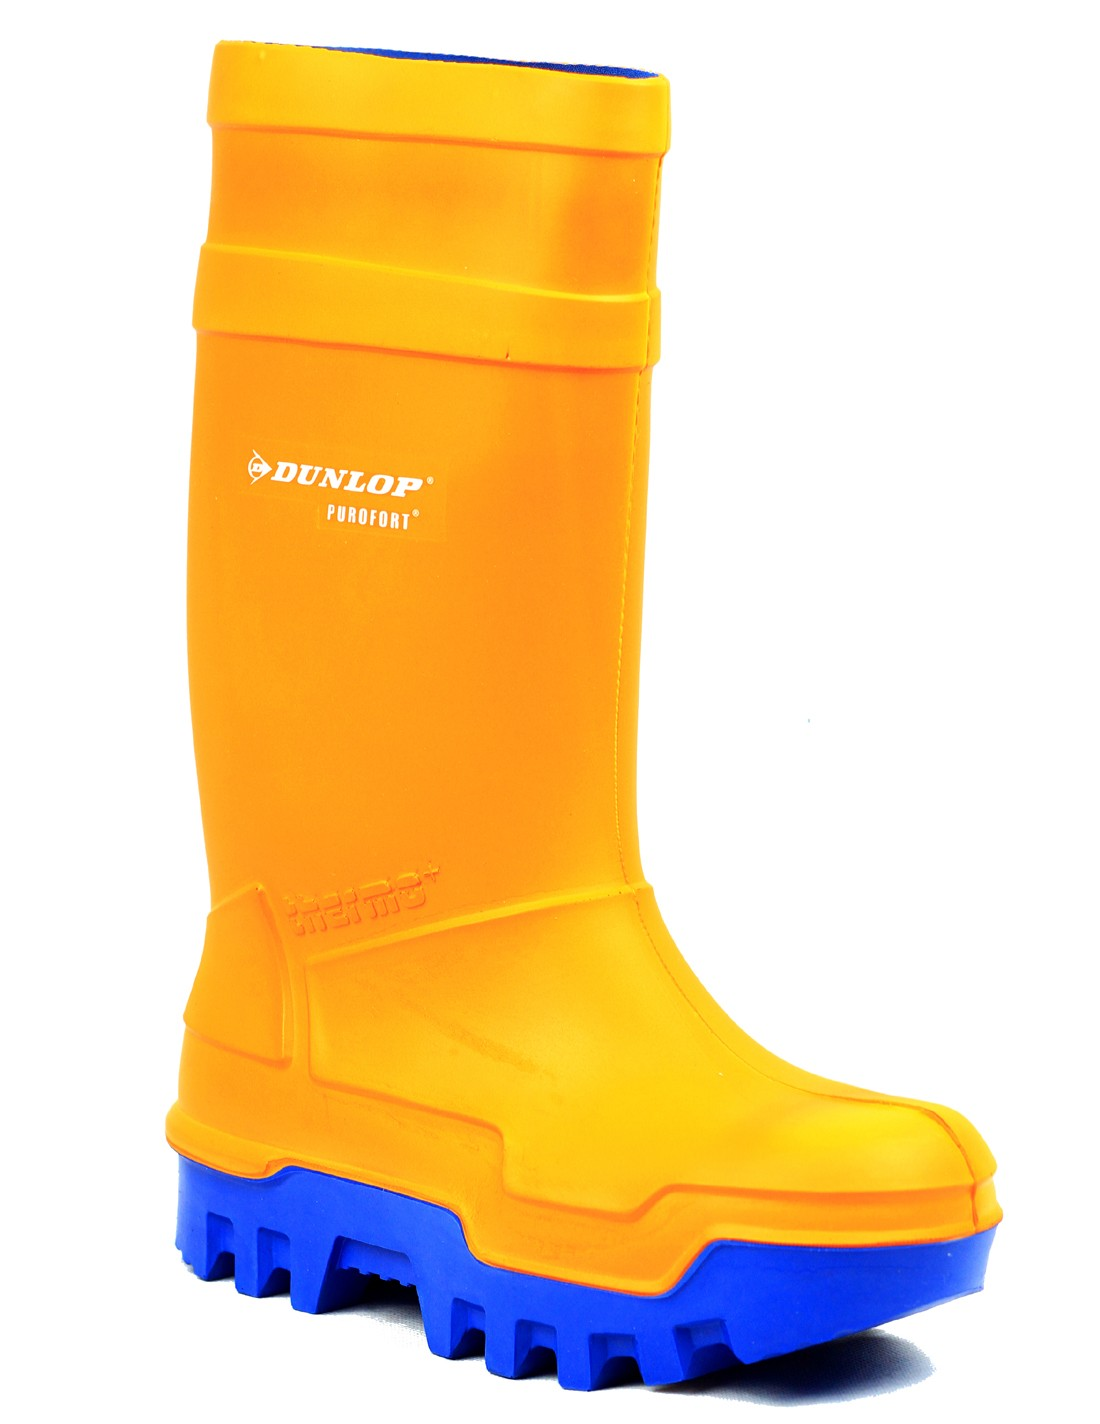 20! DUNLOP PUROFORT PROFESSIONAL FULL SAFETY Steel Toe Wellingtons insulated to